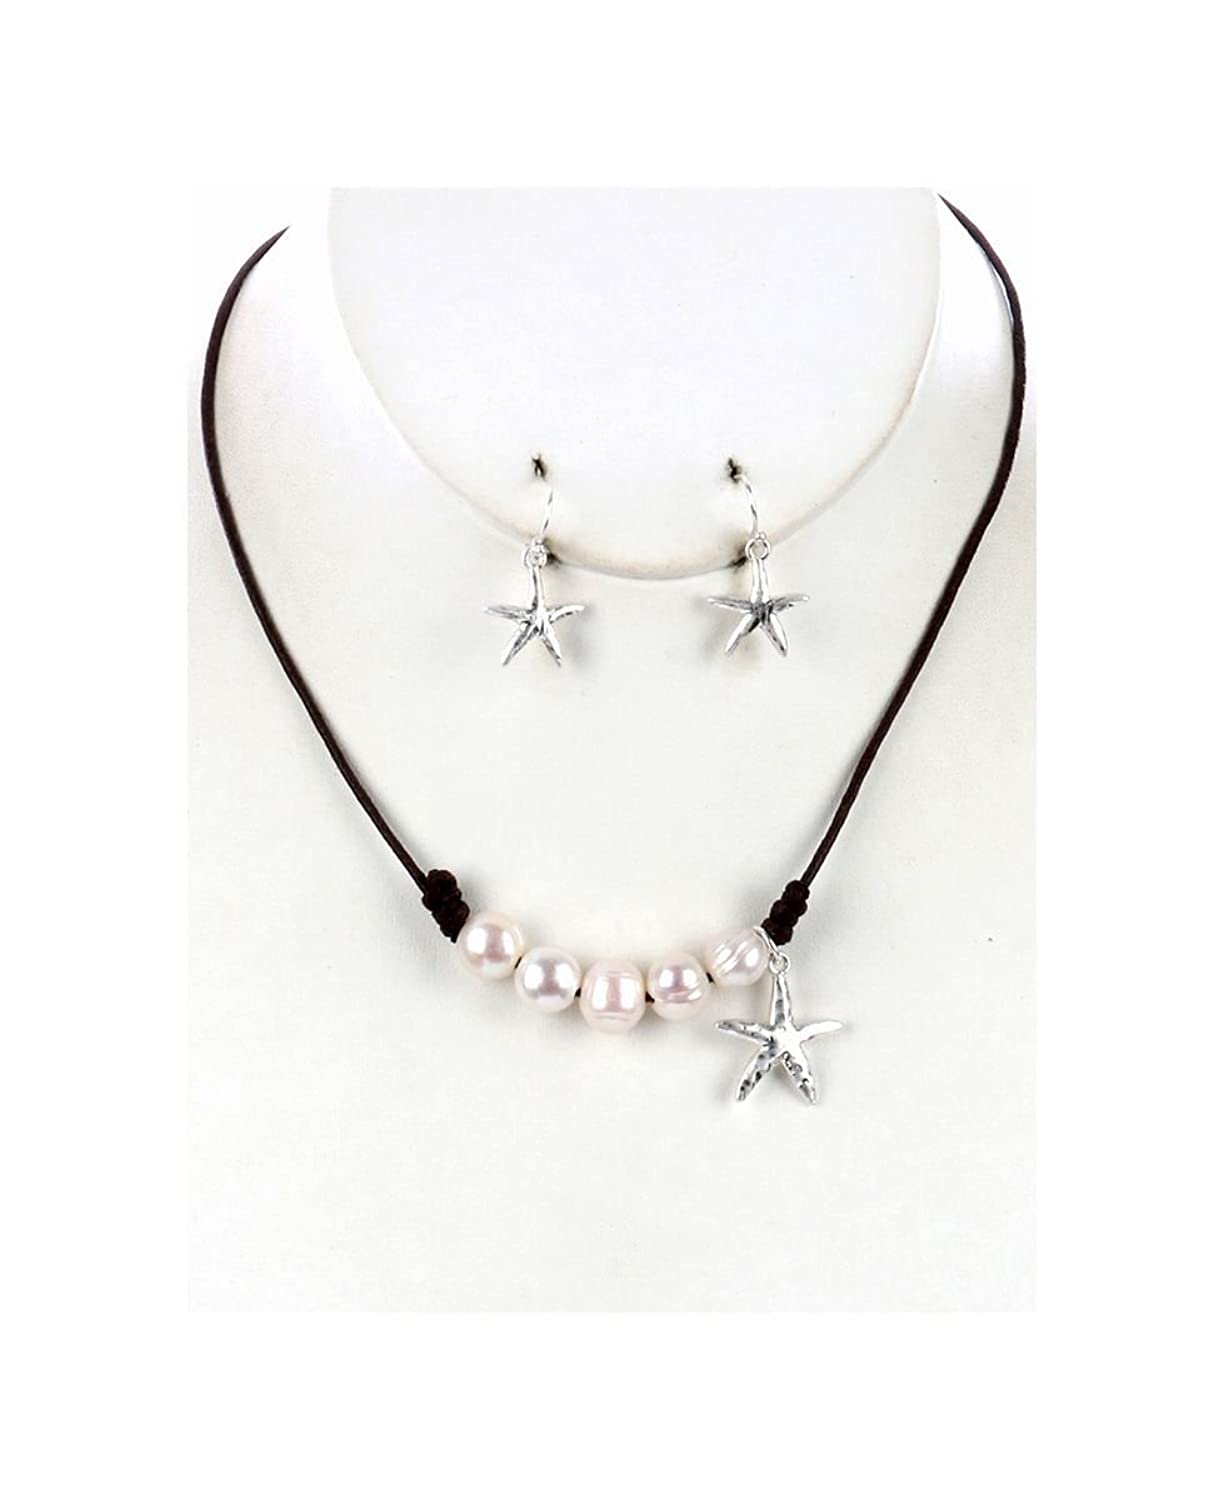 Metal Starfish Charm Necklace And Earring Set Pearl Bib With Matte Finish